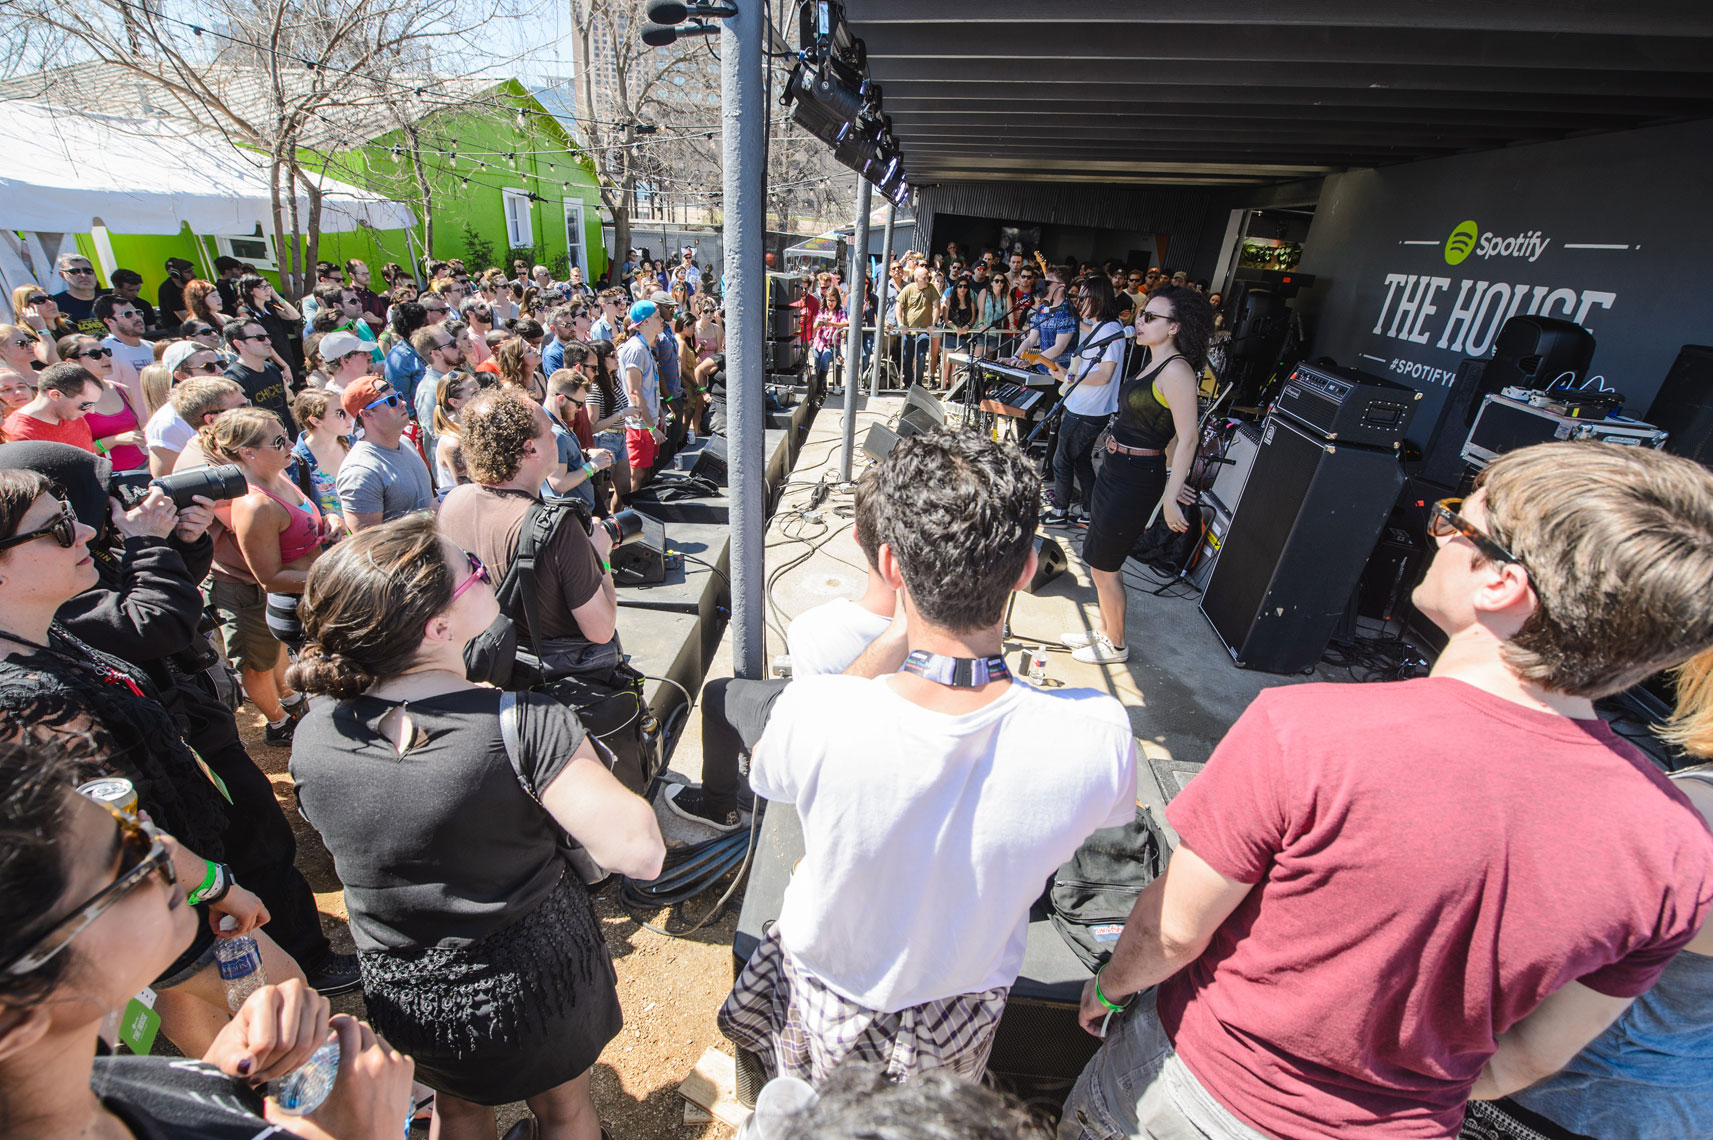 Jungle-performs-at-The-Spotify-House-During-SXSW-2014